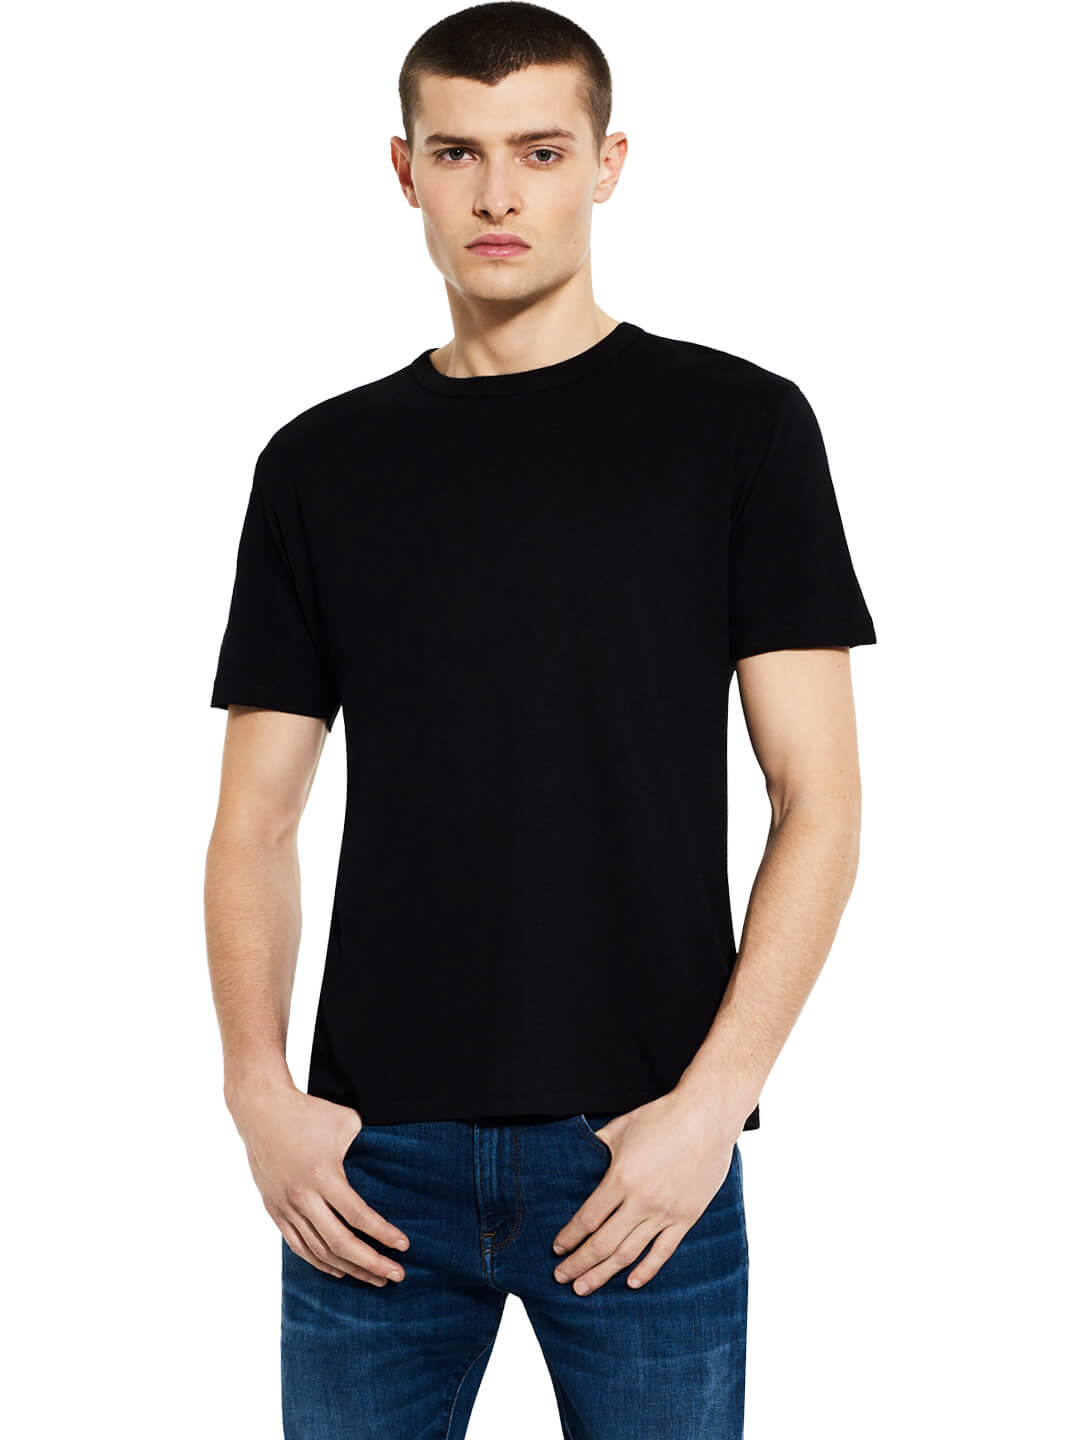 Bamboo T-shirt: Mens